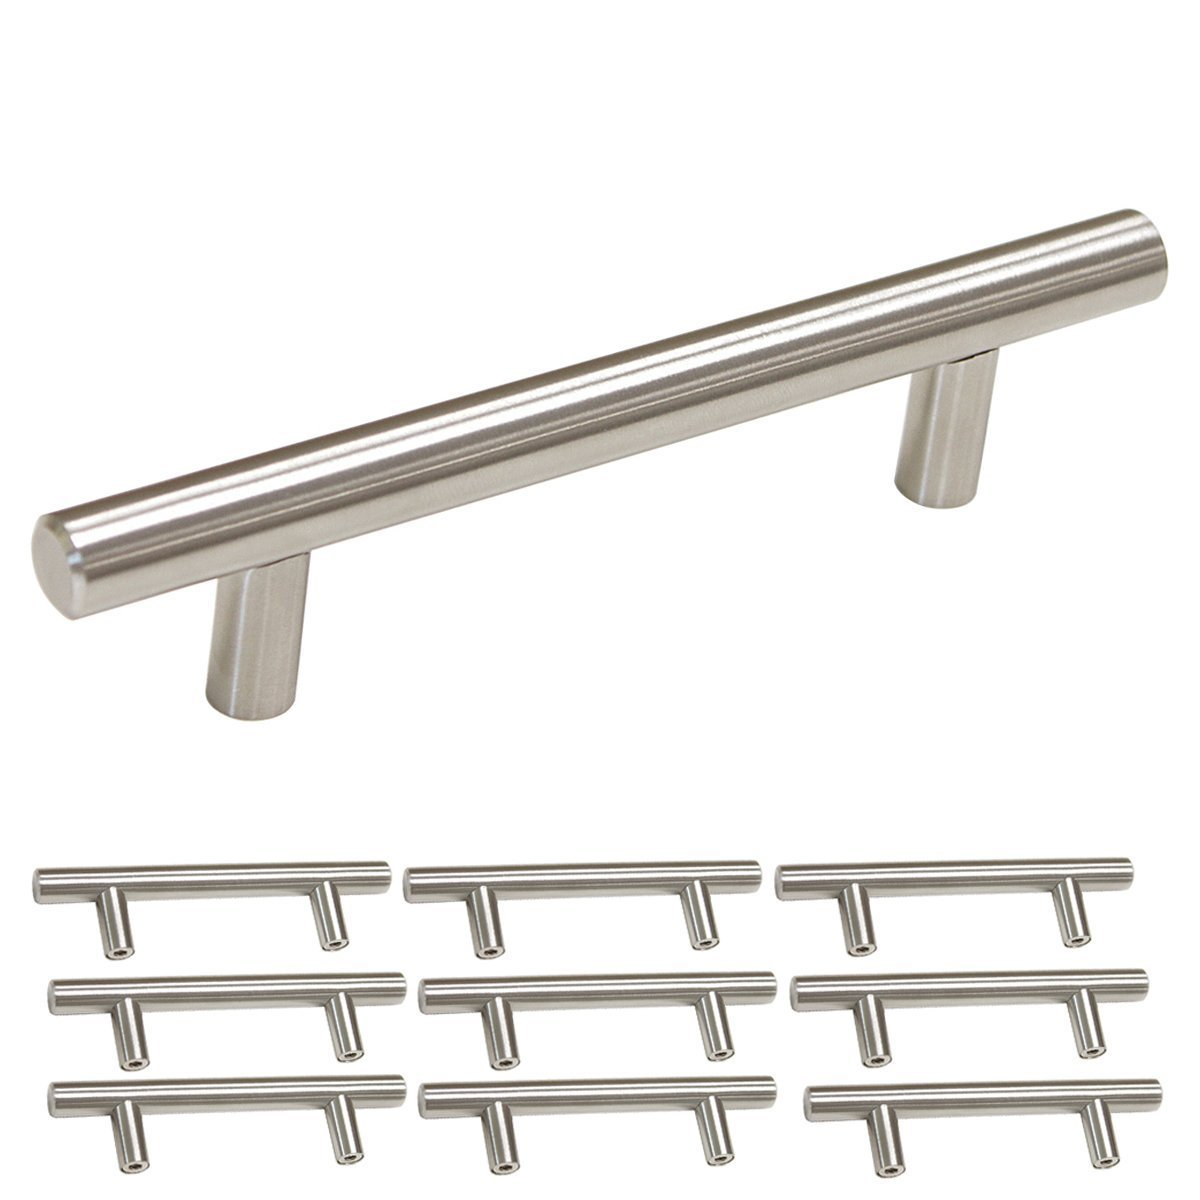 Get Quotations · 3.5 Inch Cabinet Pulls Stainless Steel   Homdiy HD201SN  Bathroom Cupboard Drawer Pulls Office Desk Drawer